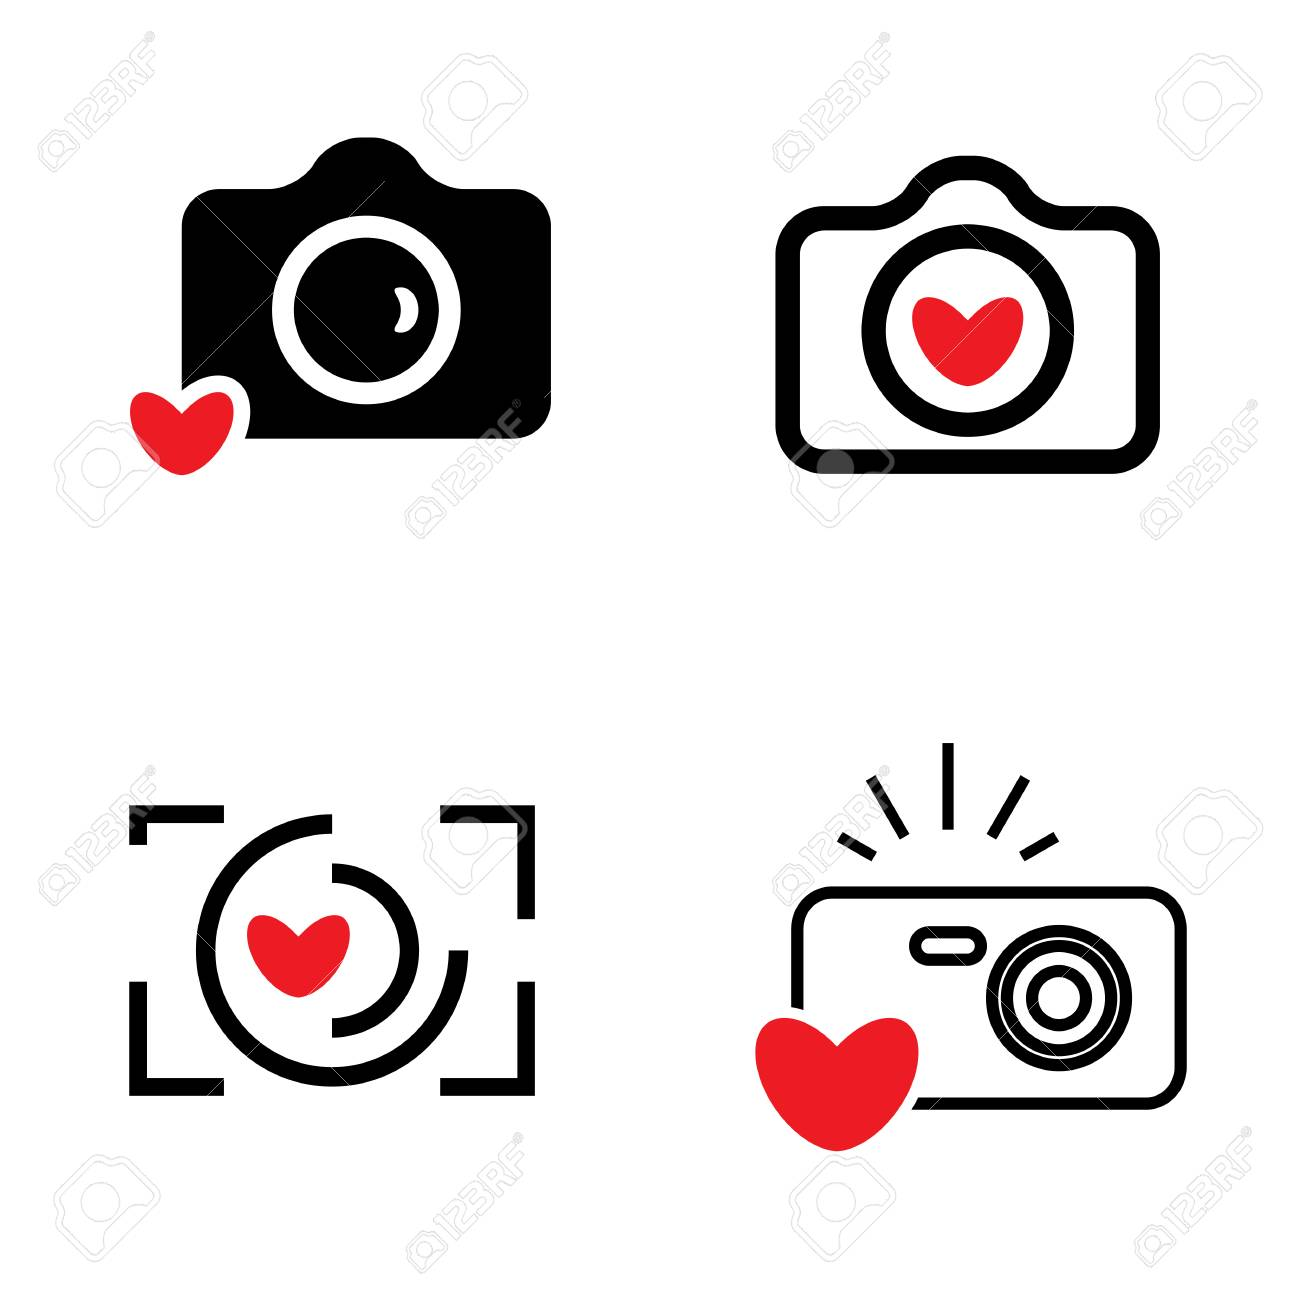 Digital Camera And Heart Icons Isolated Snapshot Photography